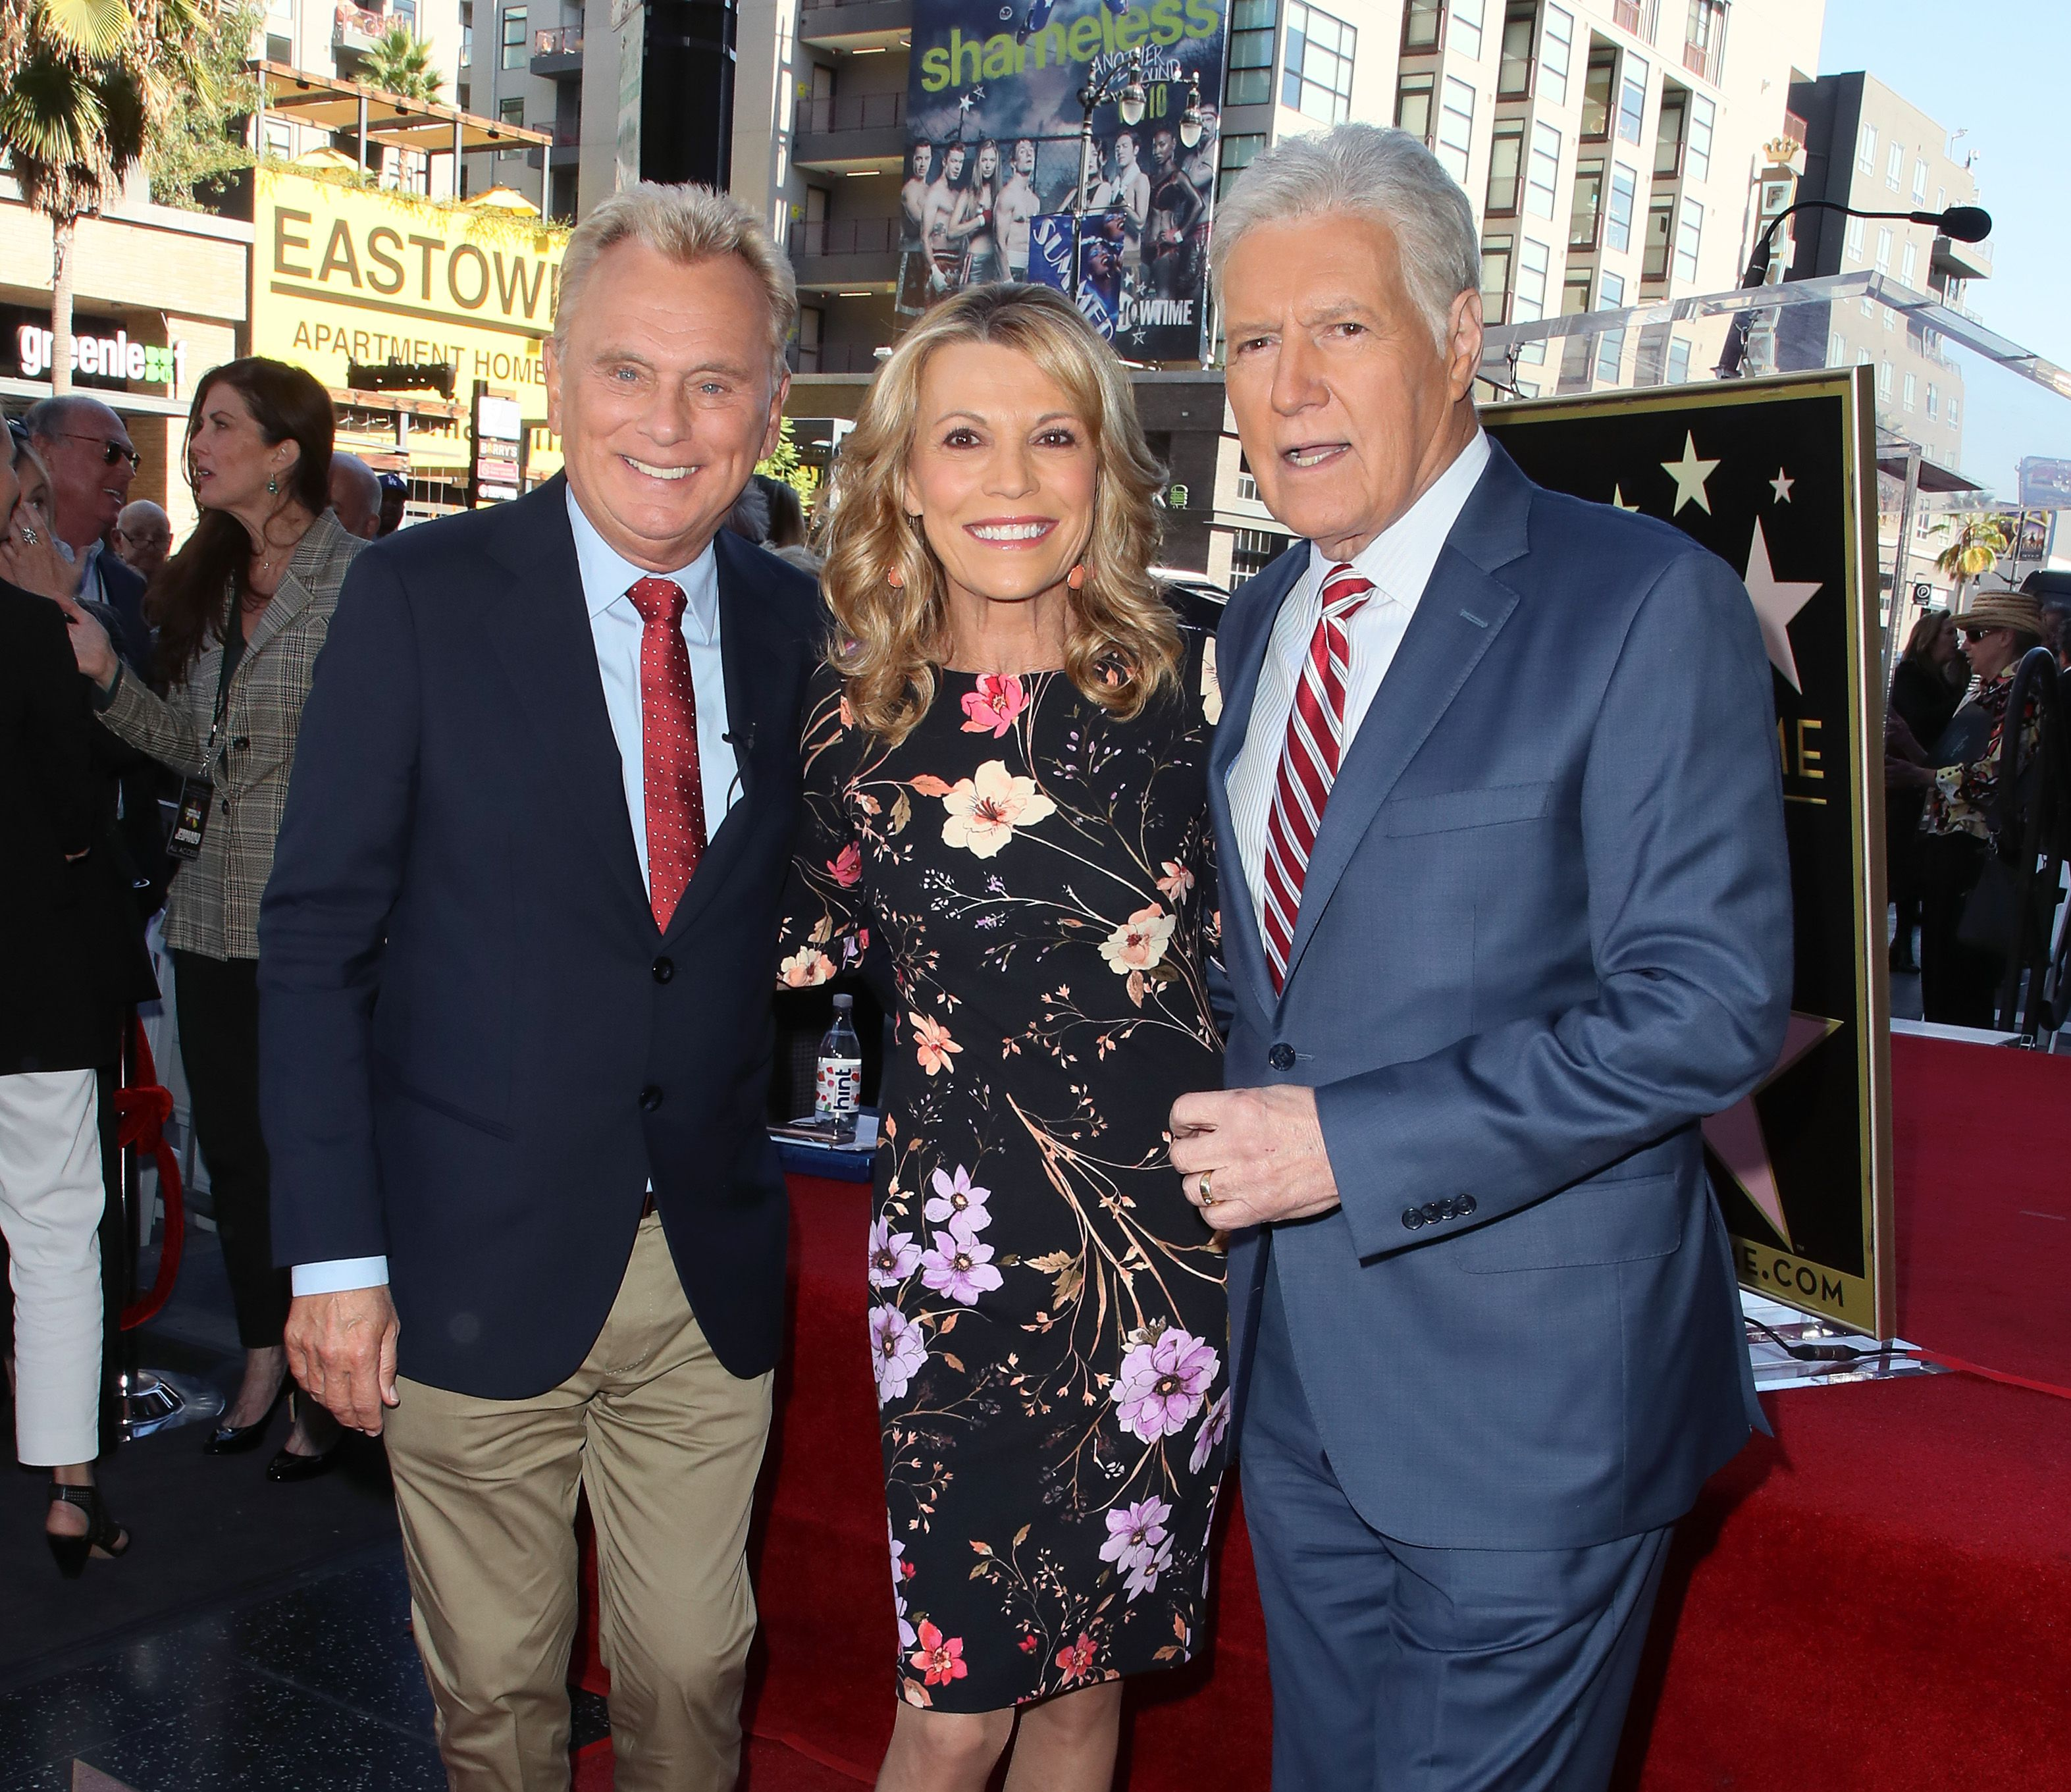 Pat Sajak, Vanna White, and Alex Trebek at the Hollywood Walk of Fame in November 2019 in Hollywood, California | Source: Getty Images